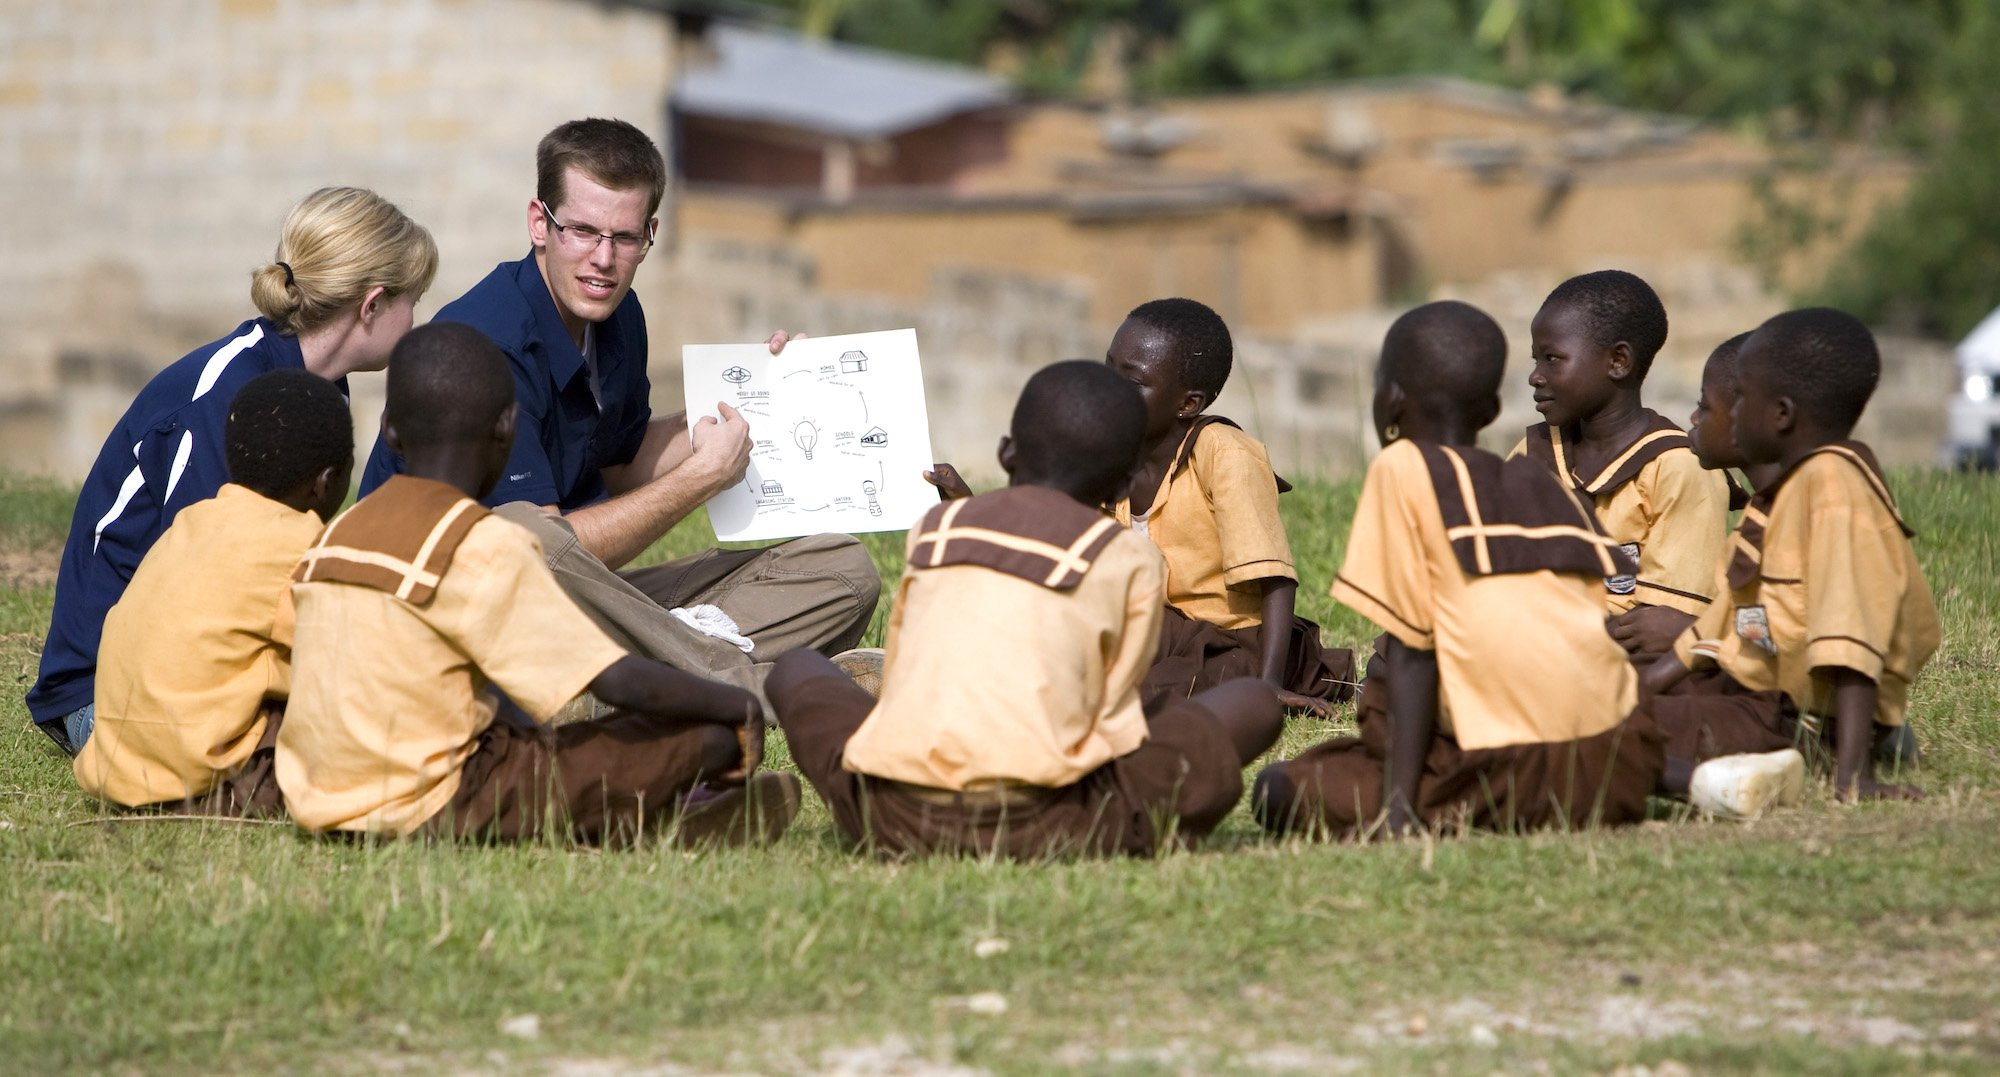 Education Important For Escaping Poverty